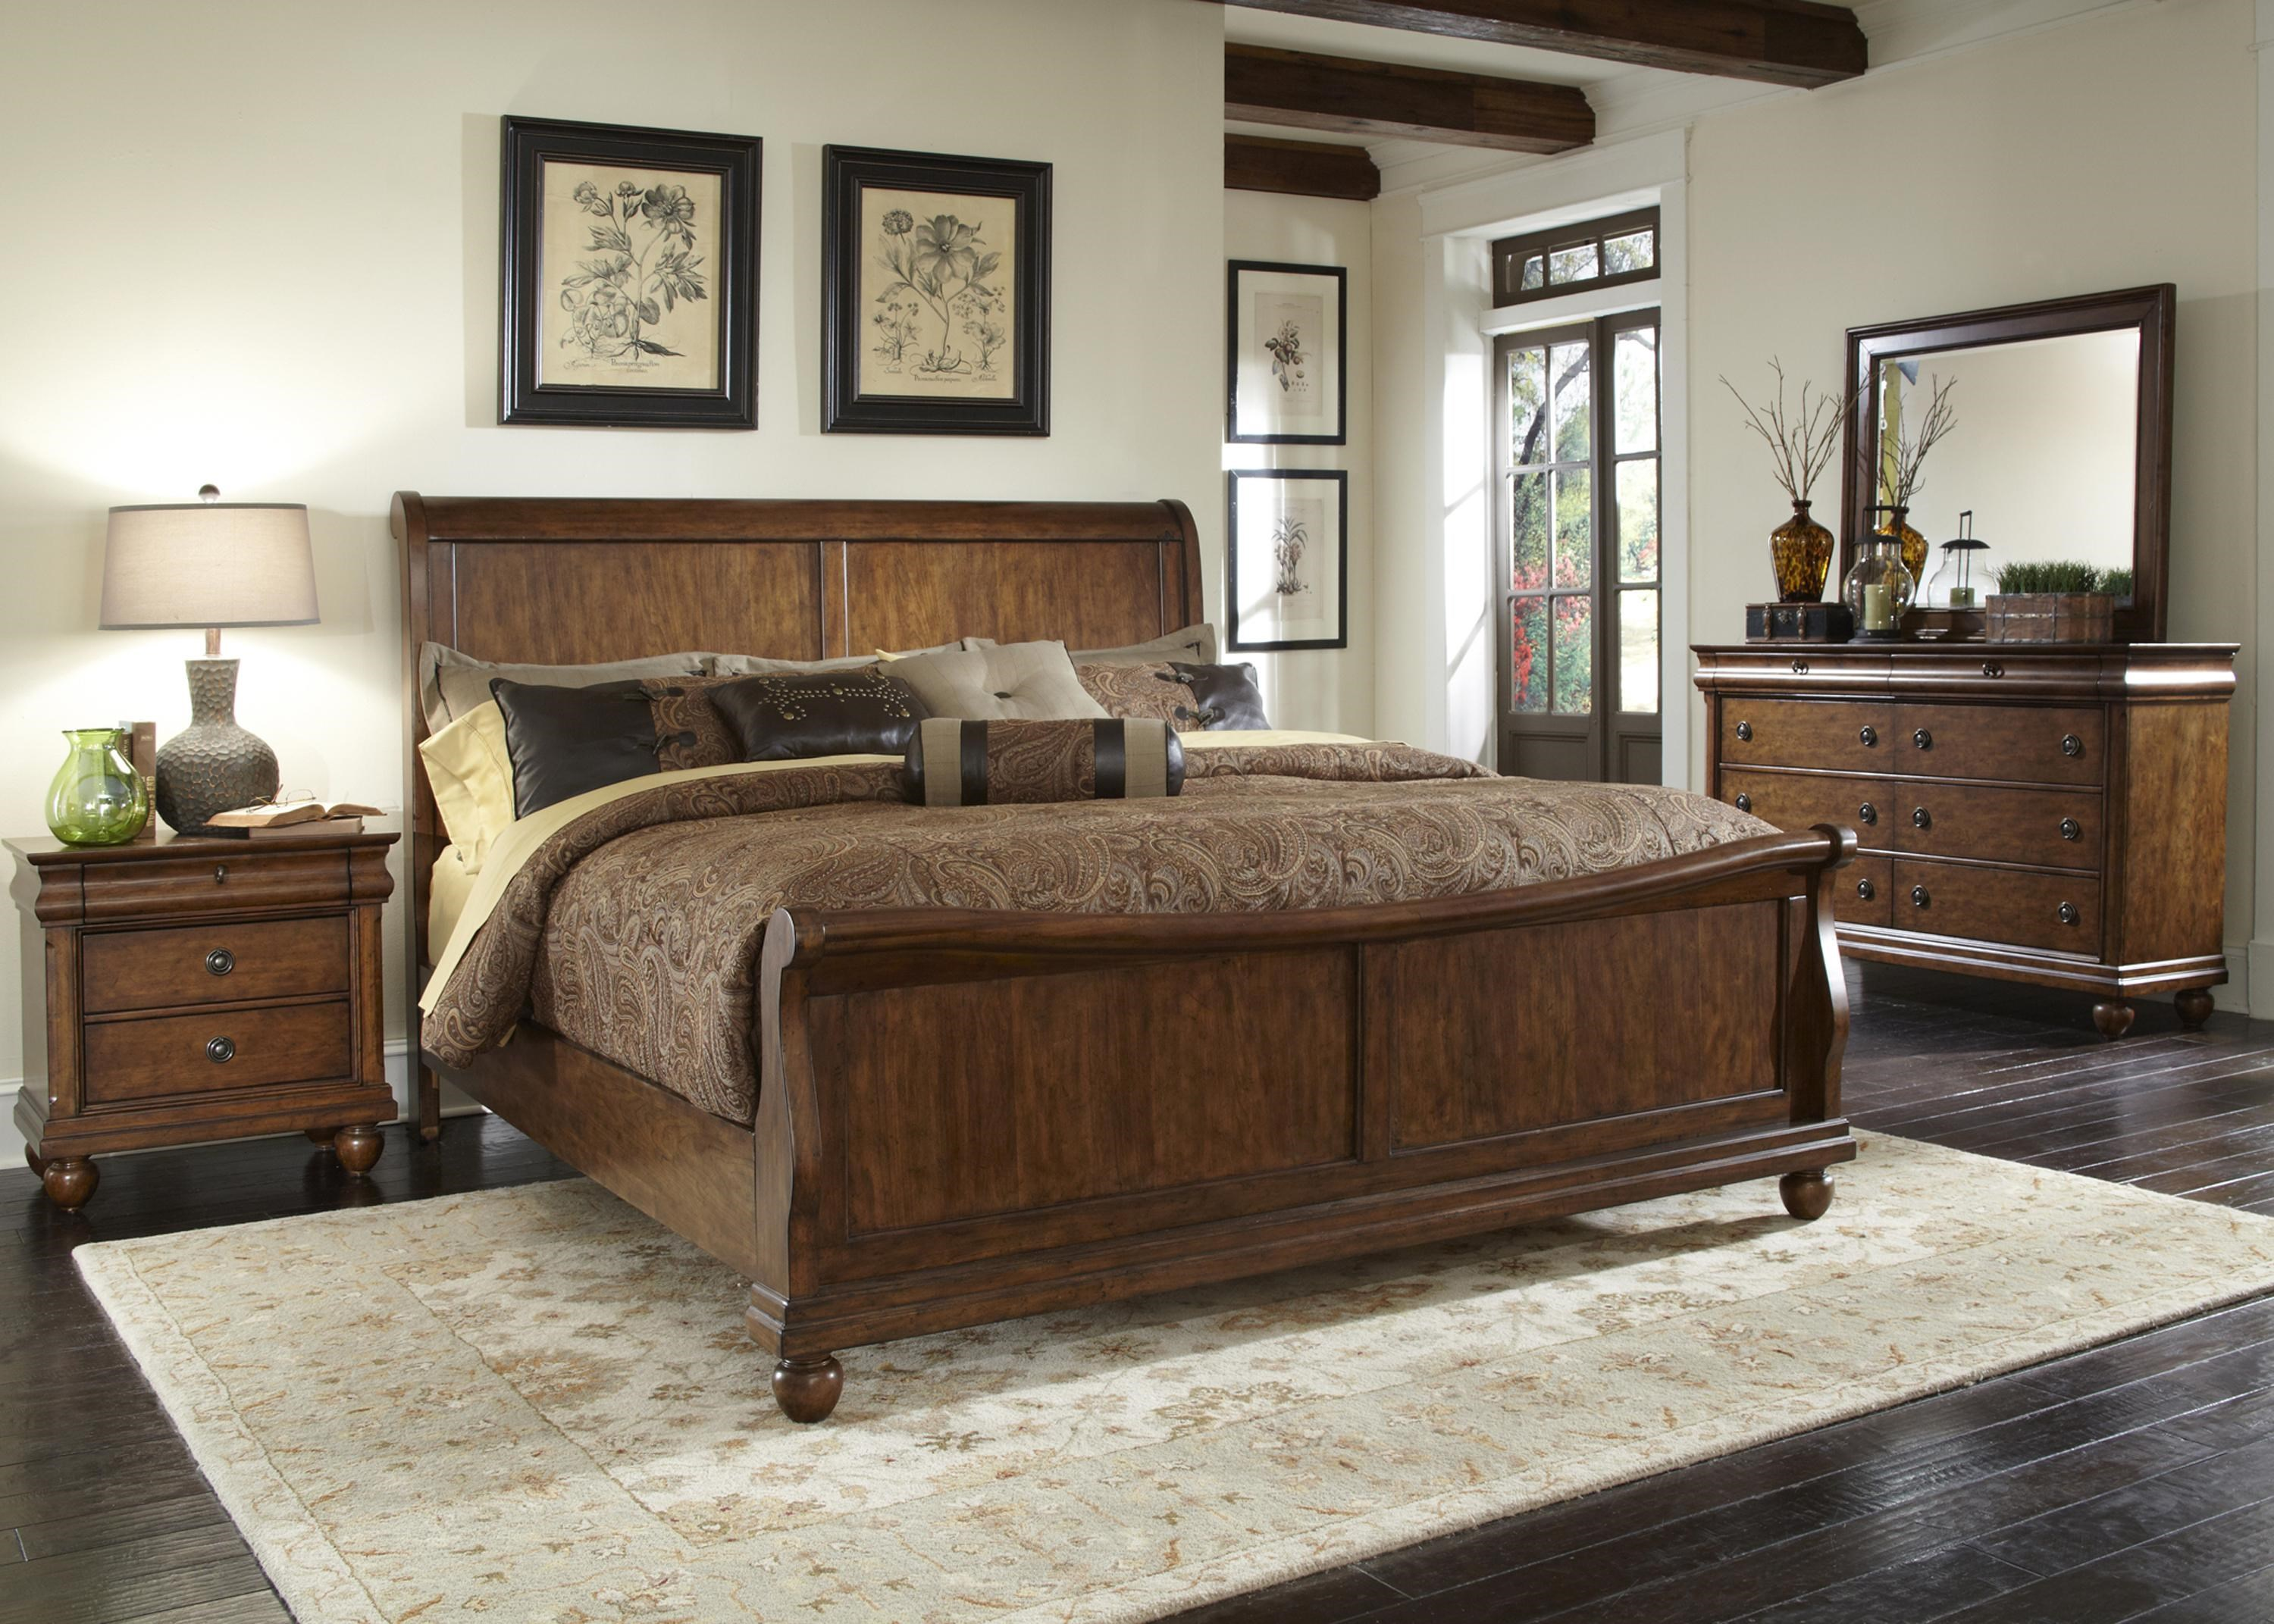 Rustic Traditions Queen Bedroom Group 2 By Sarah Randolph J